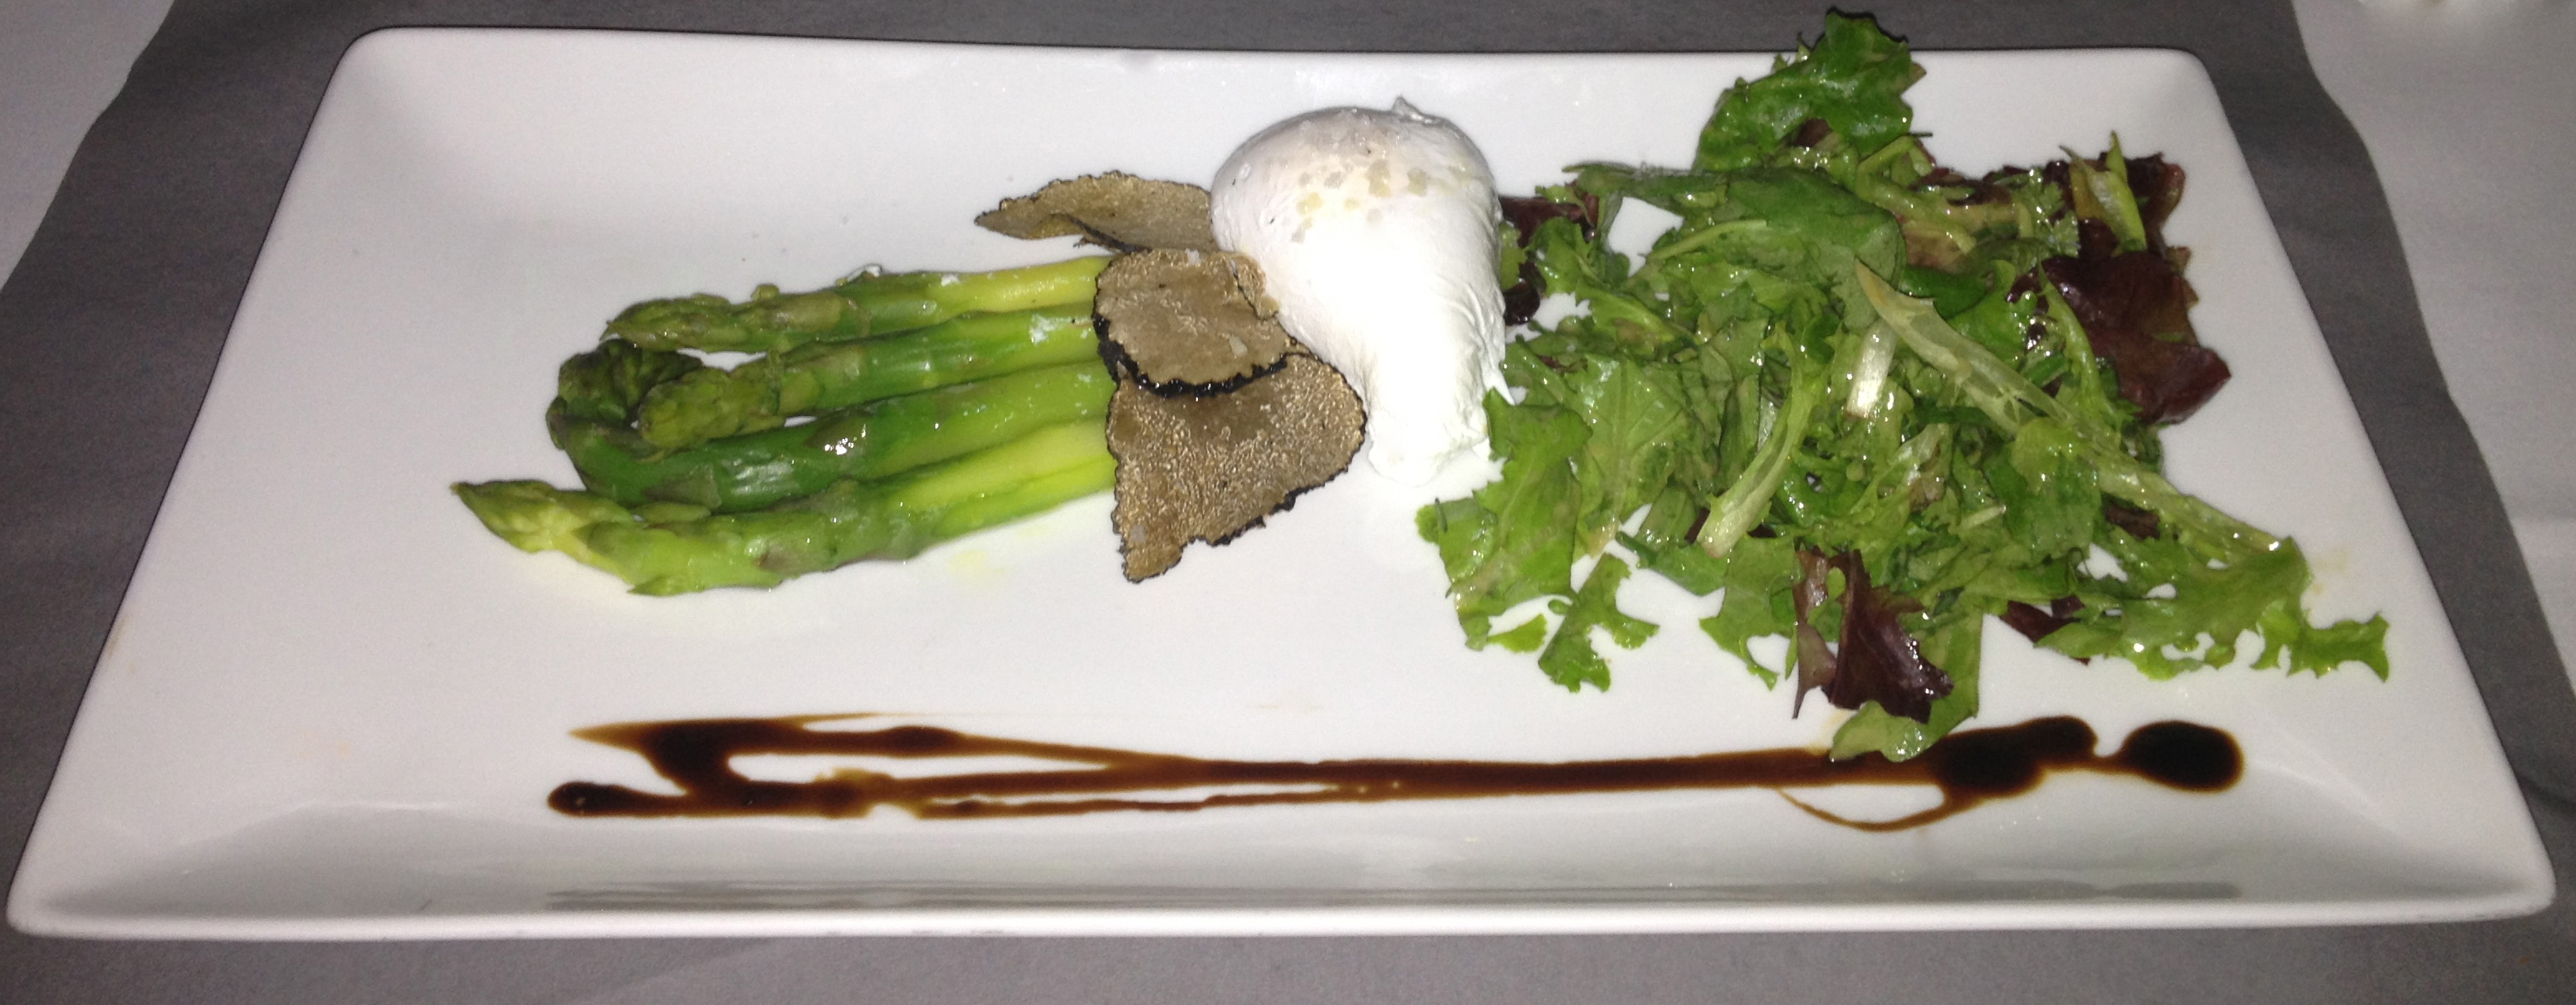 Asparagus with poached egg and truffles